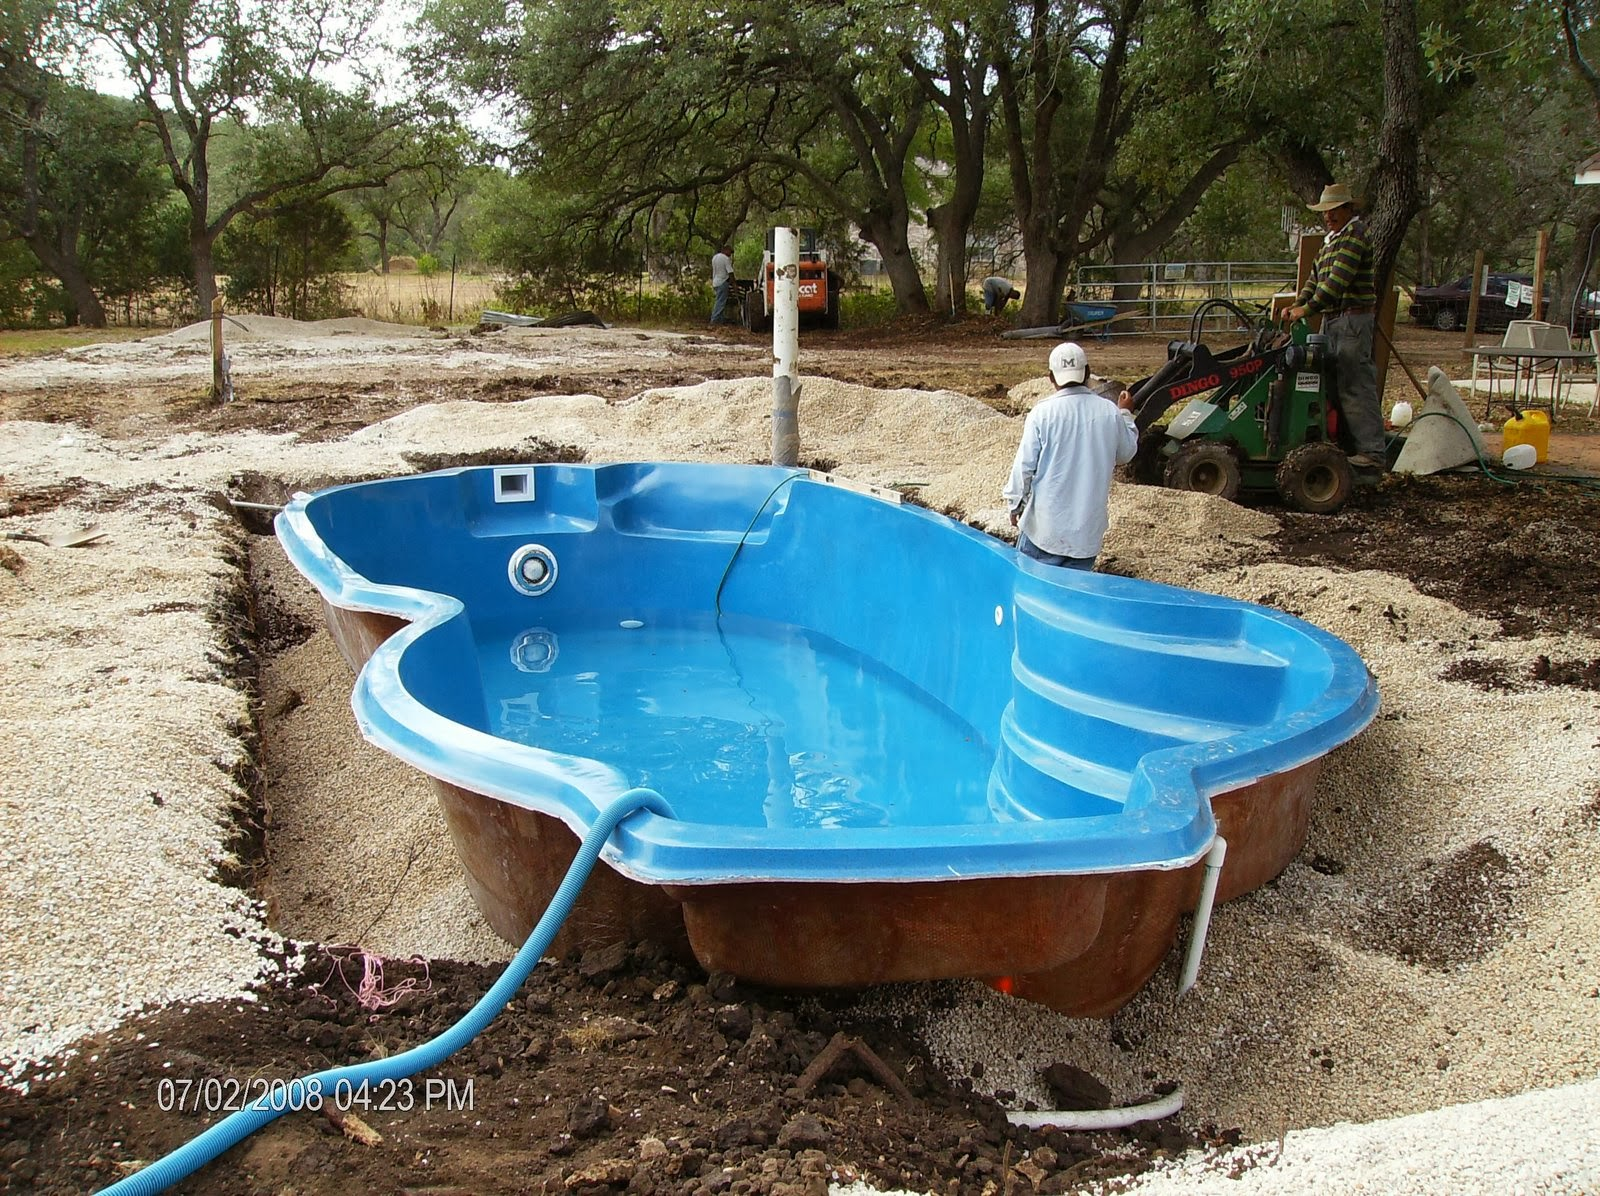 Now Let S Look At The One Piece Fibergl In Ground Pool My Opinion These Have Some Major Drawbacks First They Are Made From Molds And